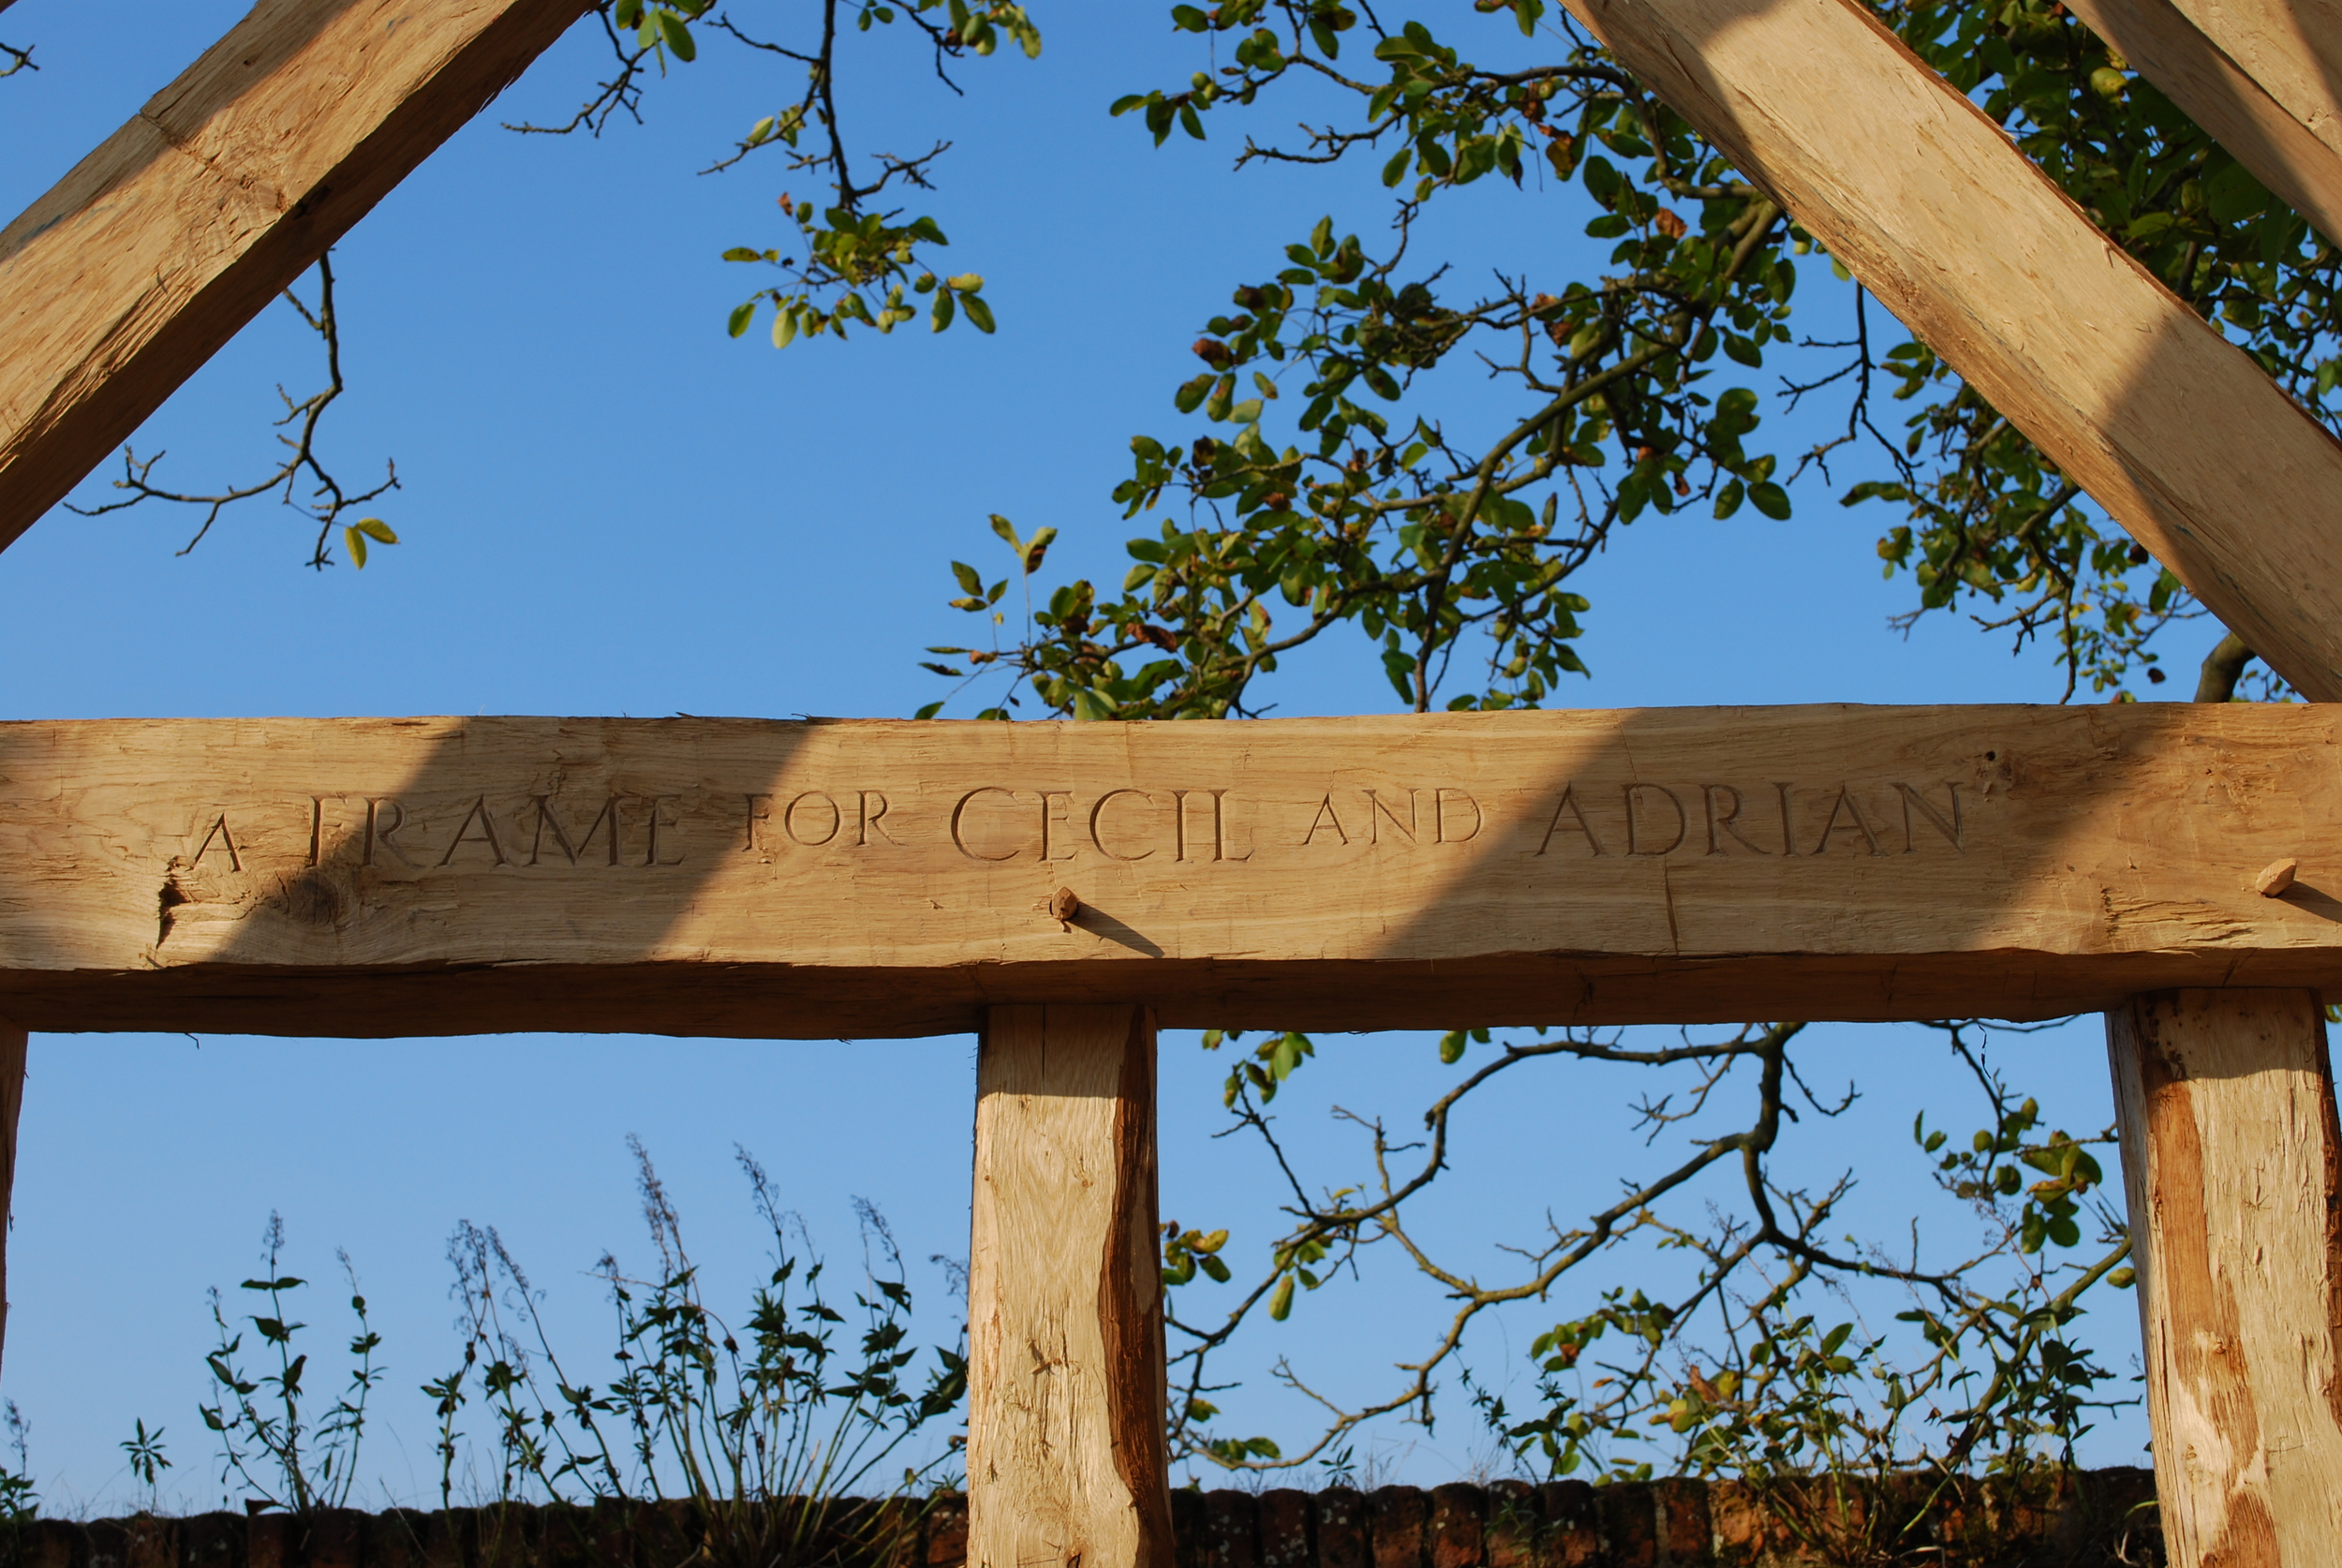 "The inscription on the inner tie beam carved by Rupert Newman says ""A frame for Cecil and Adrian."" Cecil is Cecil Hewett, author of a number of pivotal books on historic carpentry. Adrian is Adrian Gibson, a colleague of Cecil and a great historic buildings specialist. Adrian and Laurie Smith worked on the geometry of the great barns at Cressing Temple."